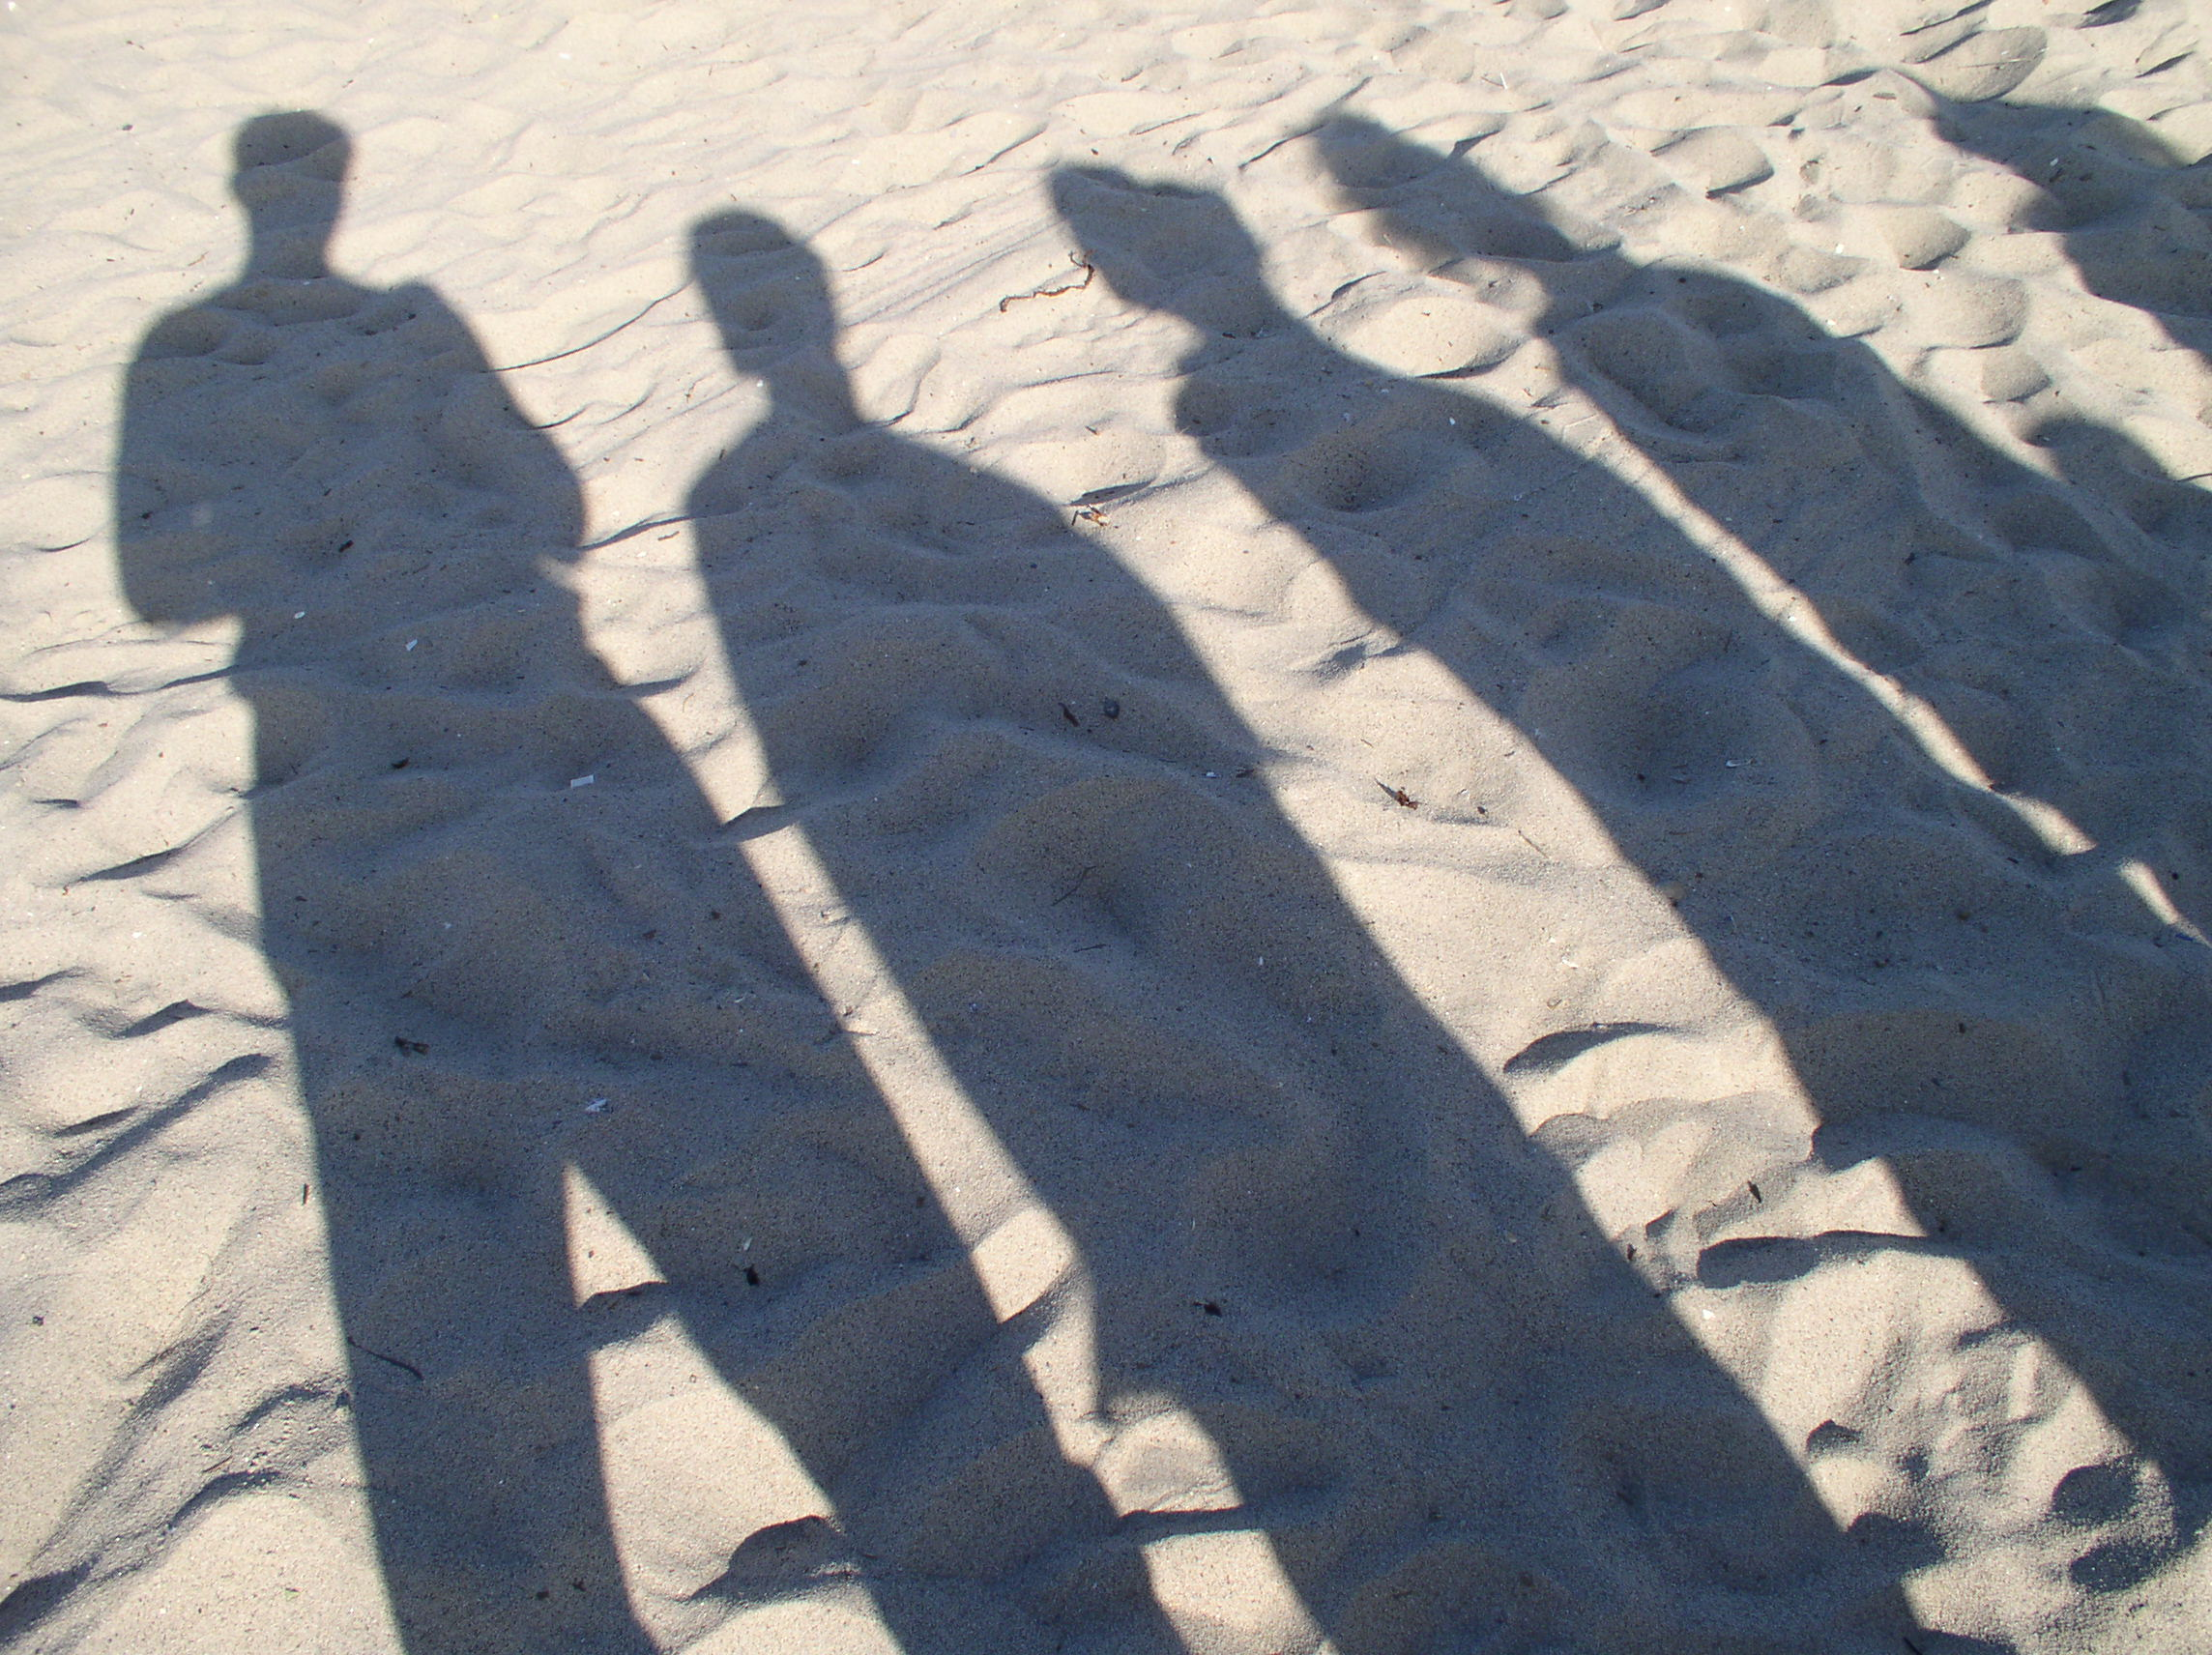 shadow meaning and definition